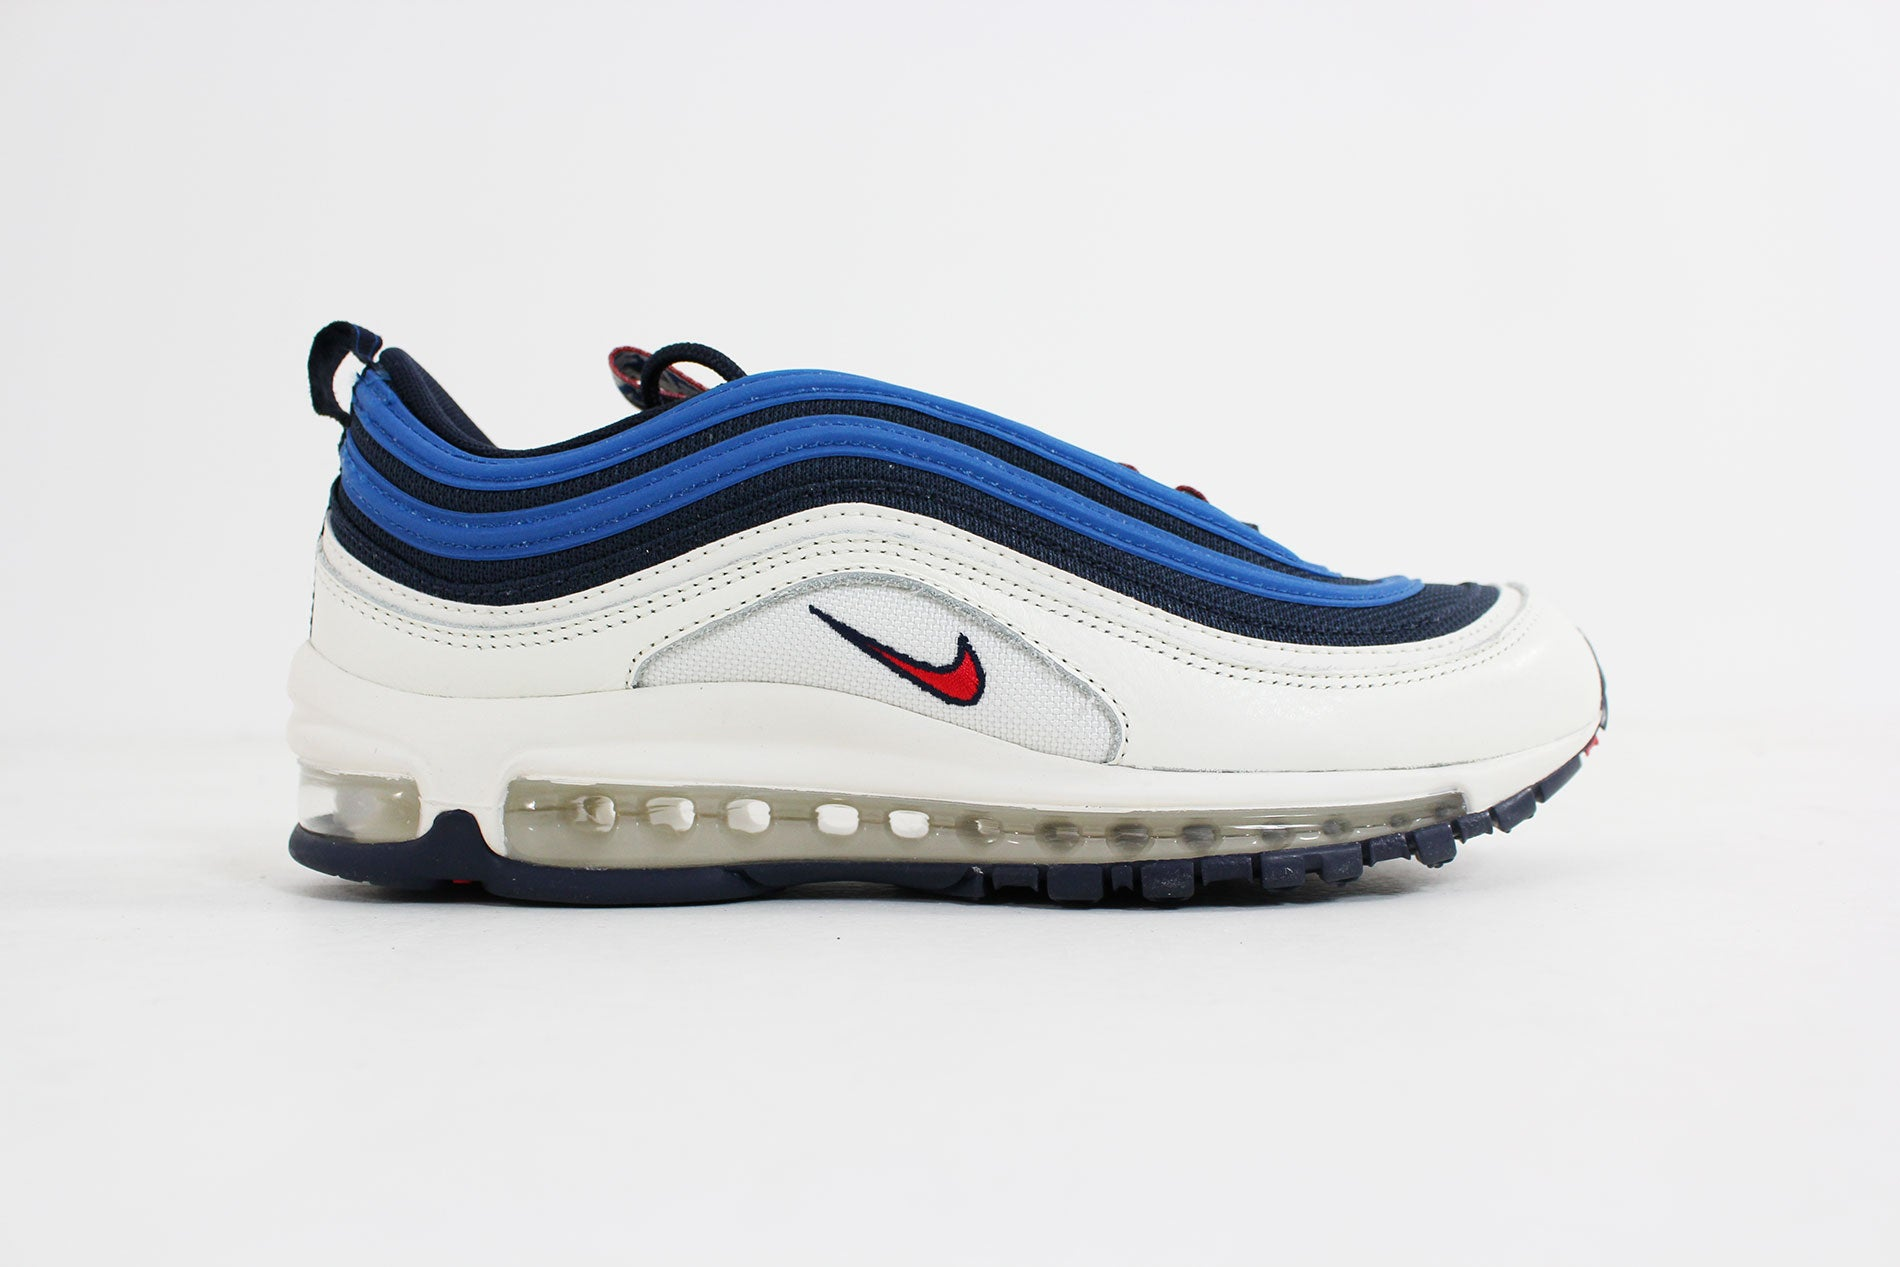 fcbe7609bd ... se gs thunder blue dark obsidian 9b401 5148b; new zealand nike air max  97 548d2 17feb